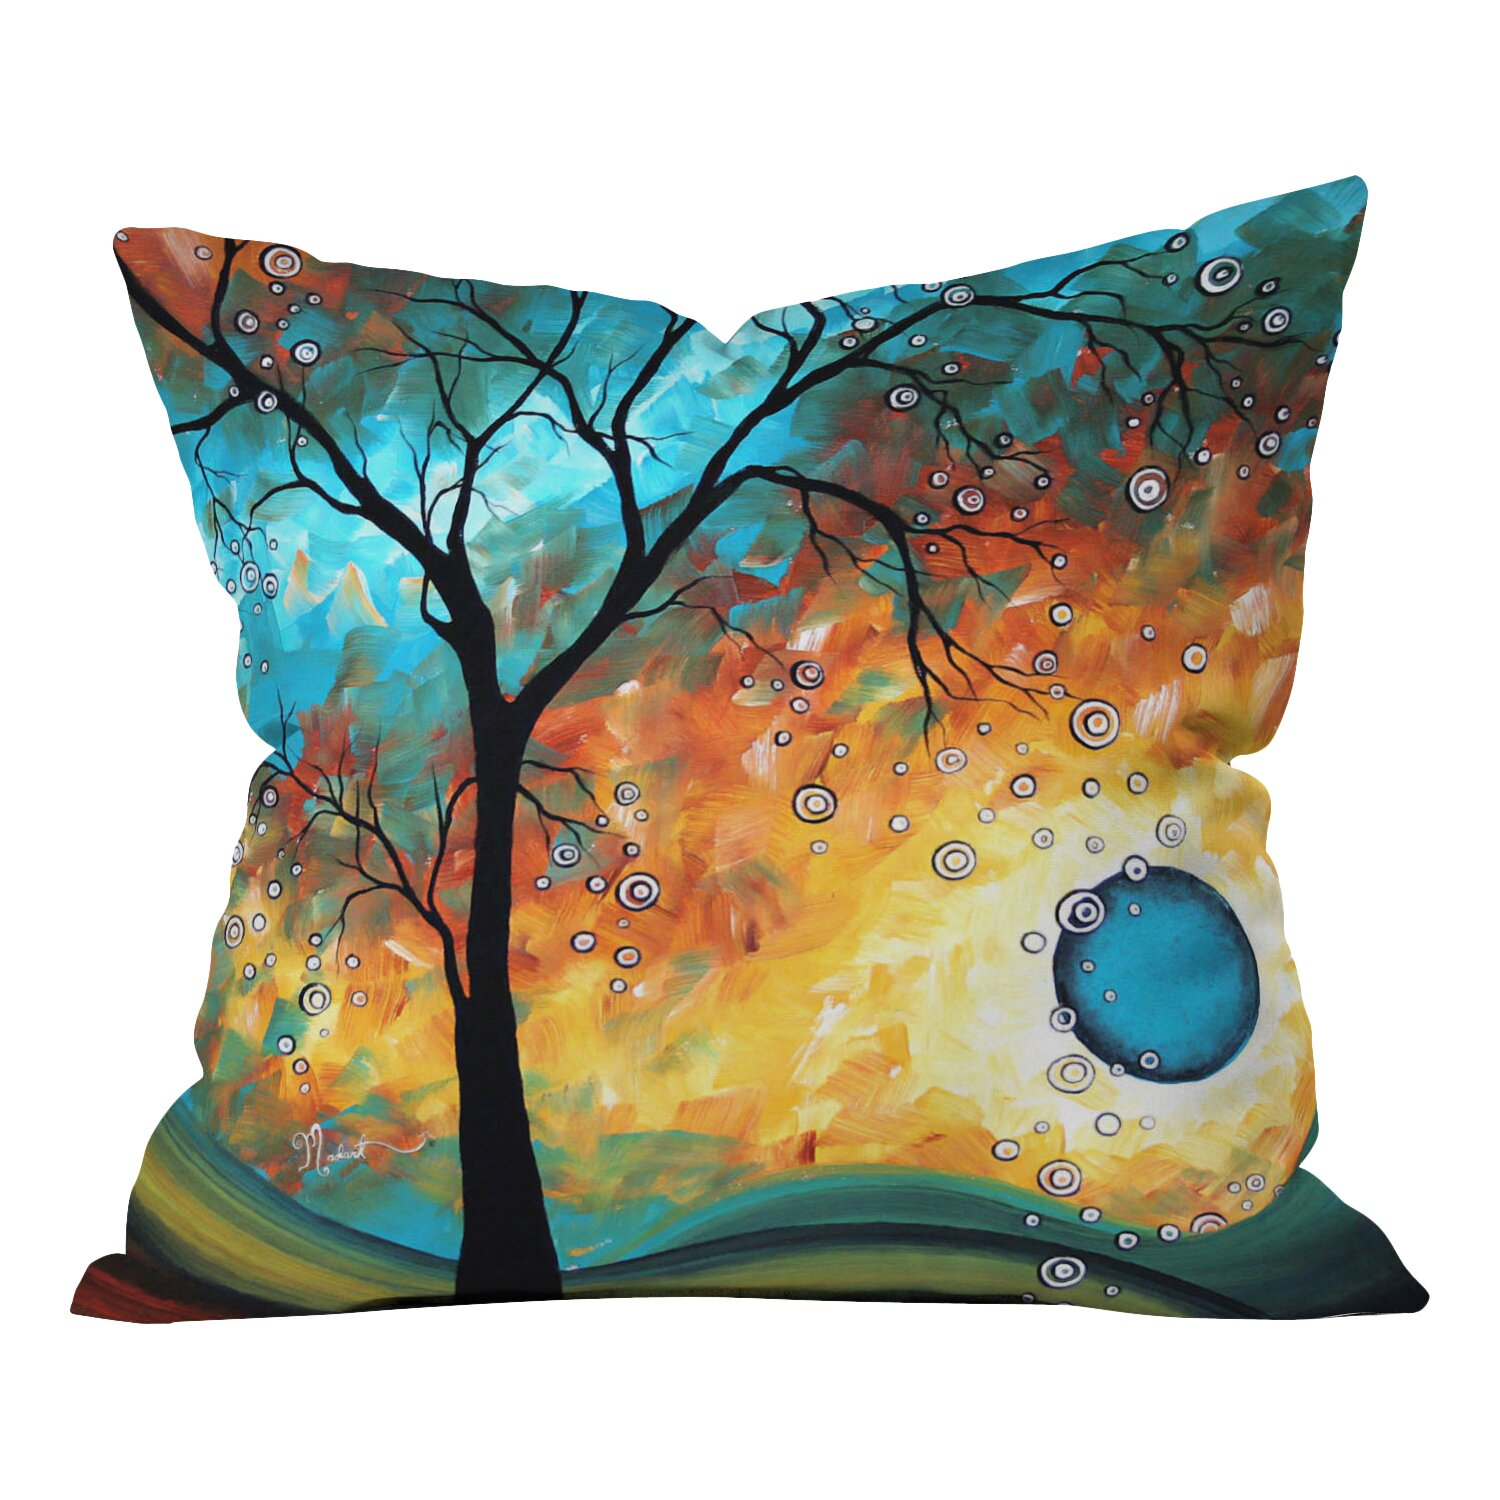 DENY Designs Madart Inc. Throw Pillow & Reviews Wayfair